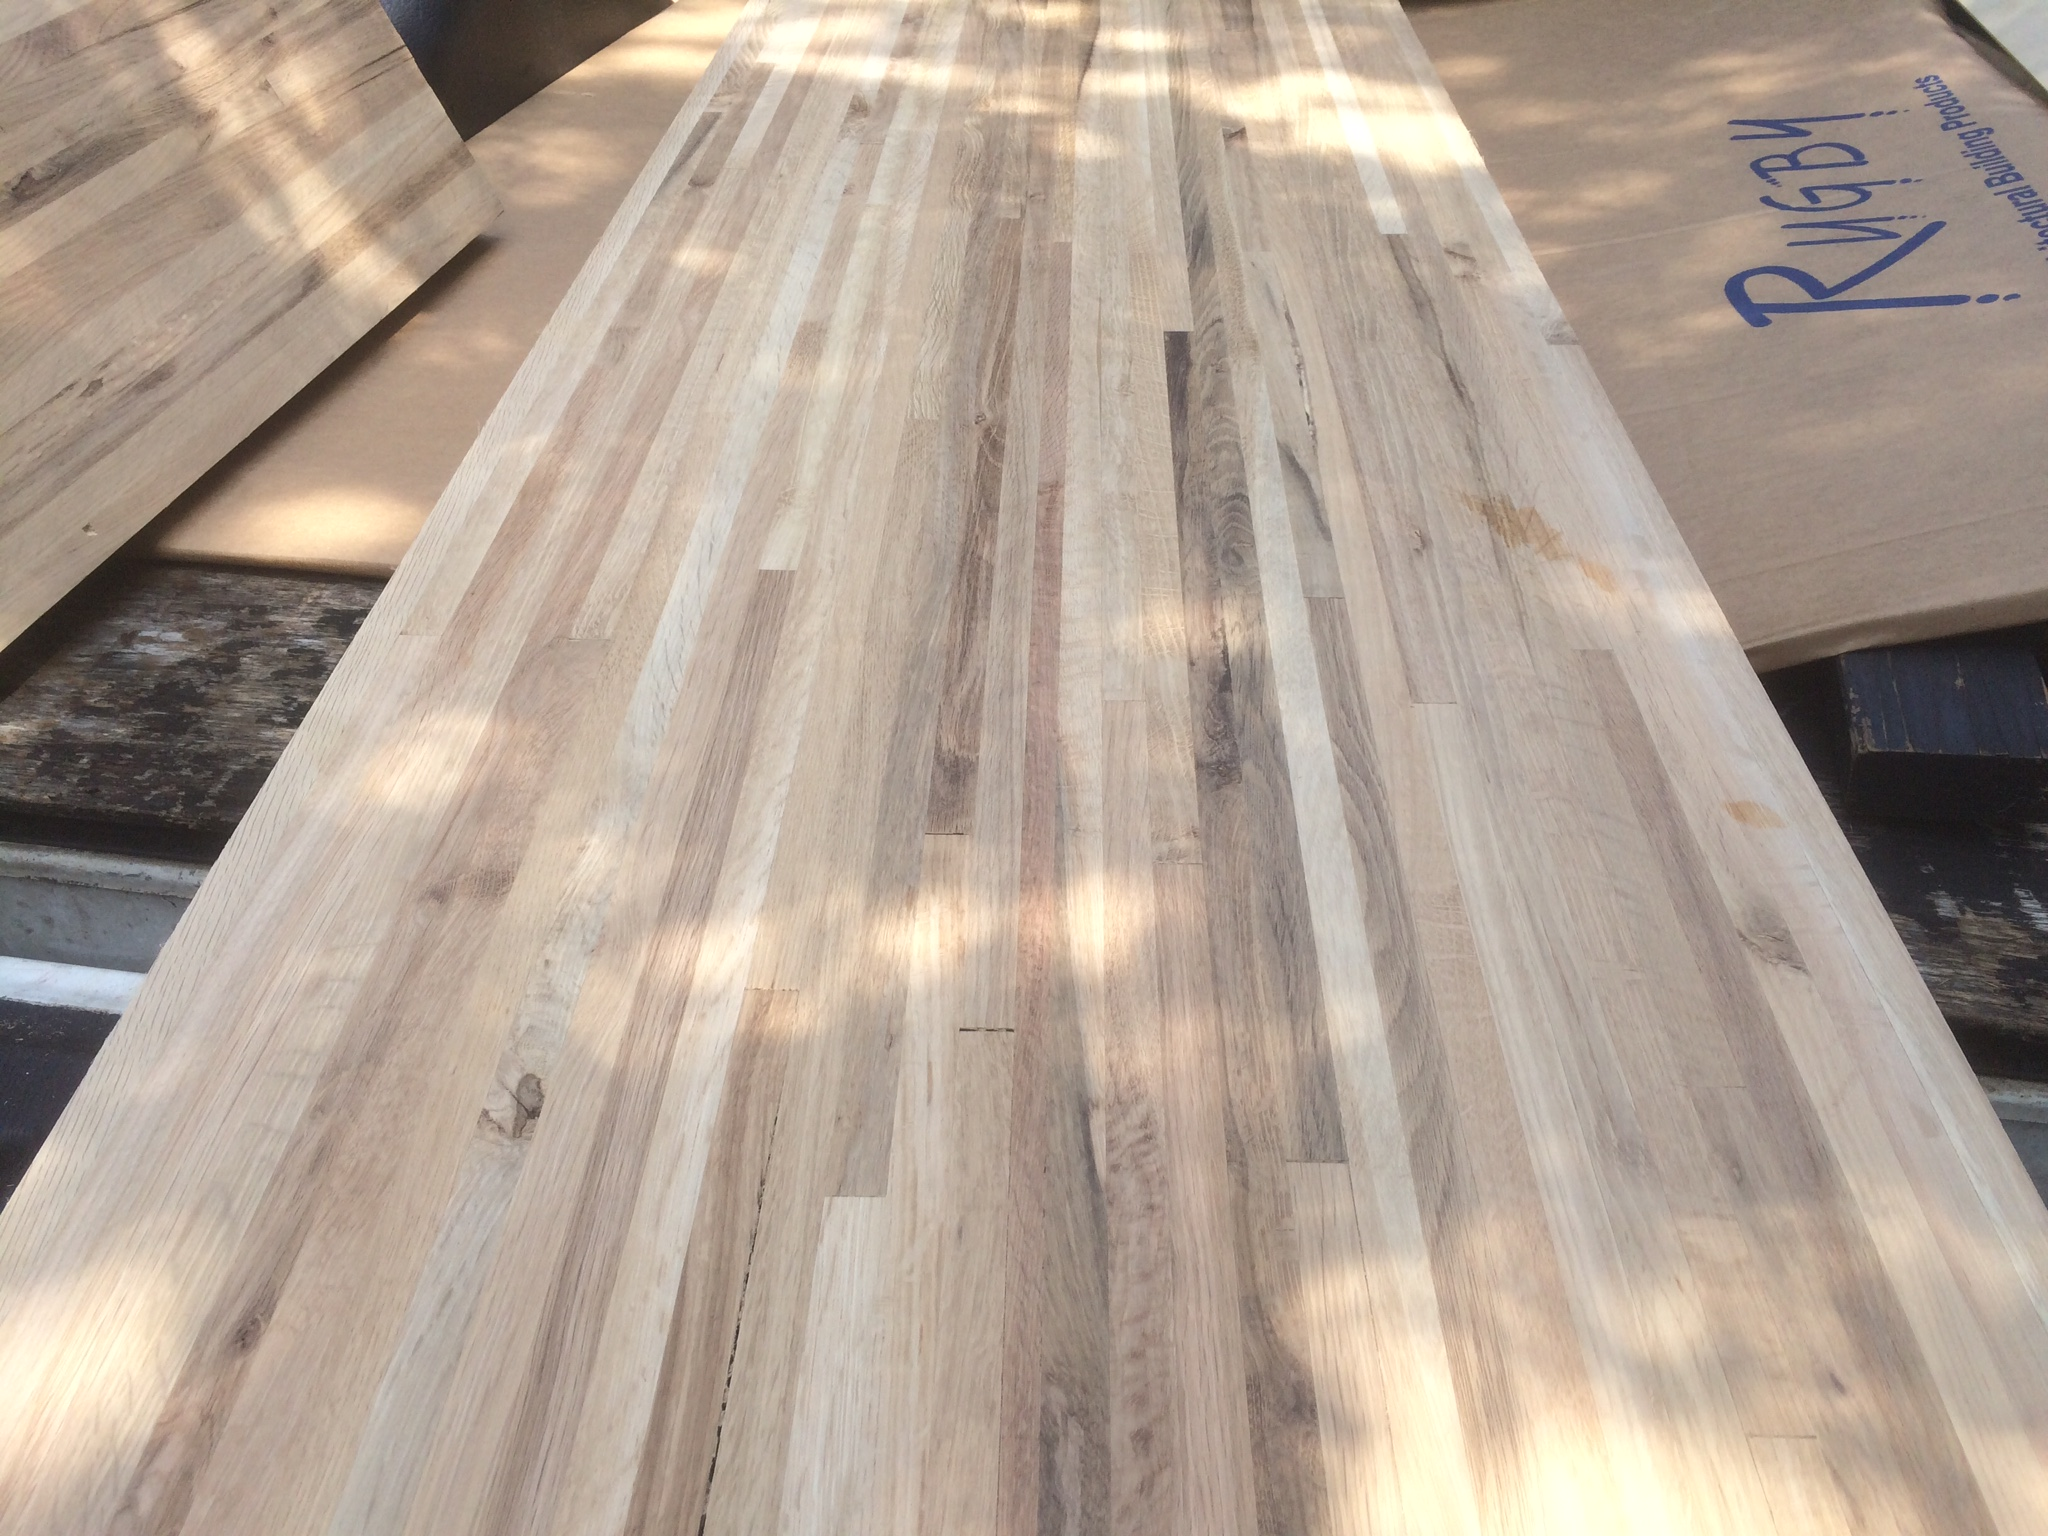 The wood countertops after planing and sanding-loaded in the bed of the truck